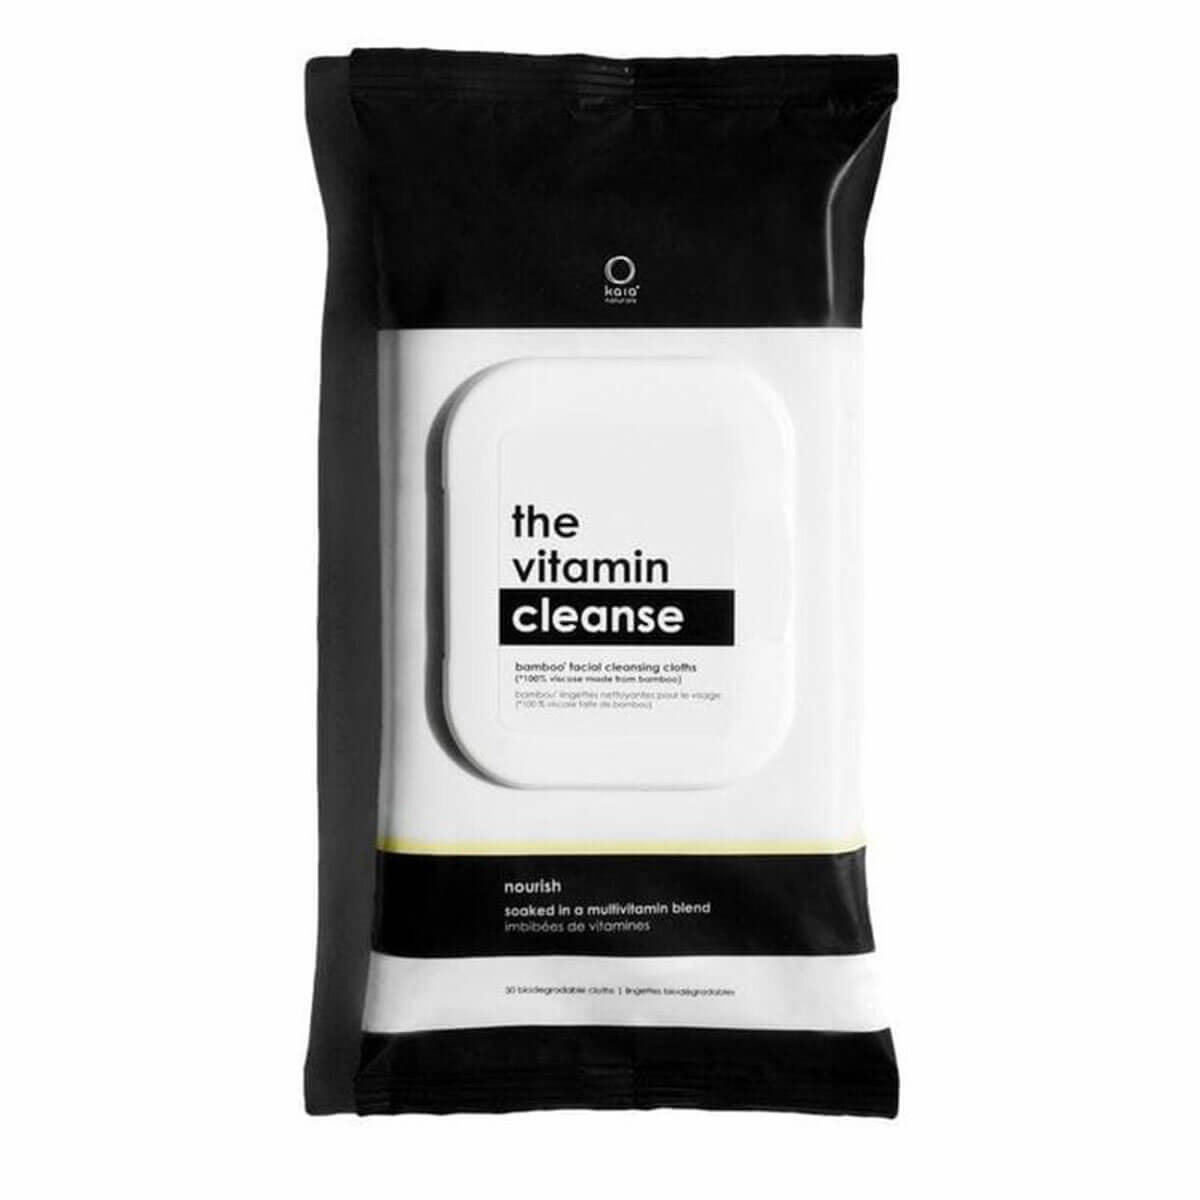 Black & white package of The Vitamin Cleanse bamboo facial wipes by Canadian company Kaia Naturals, popular among hydrating skin products